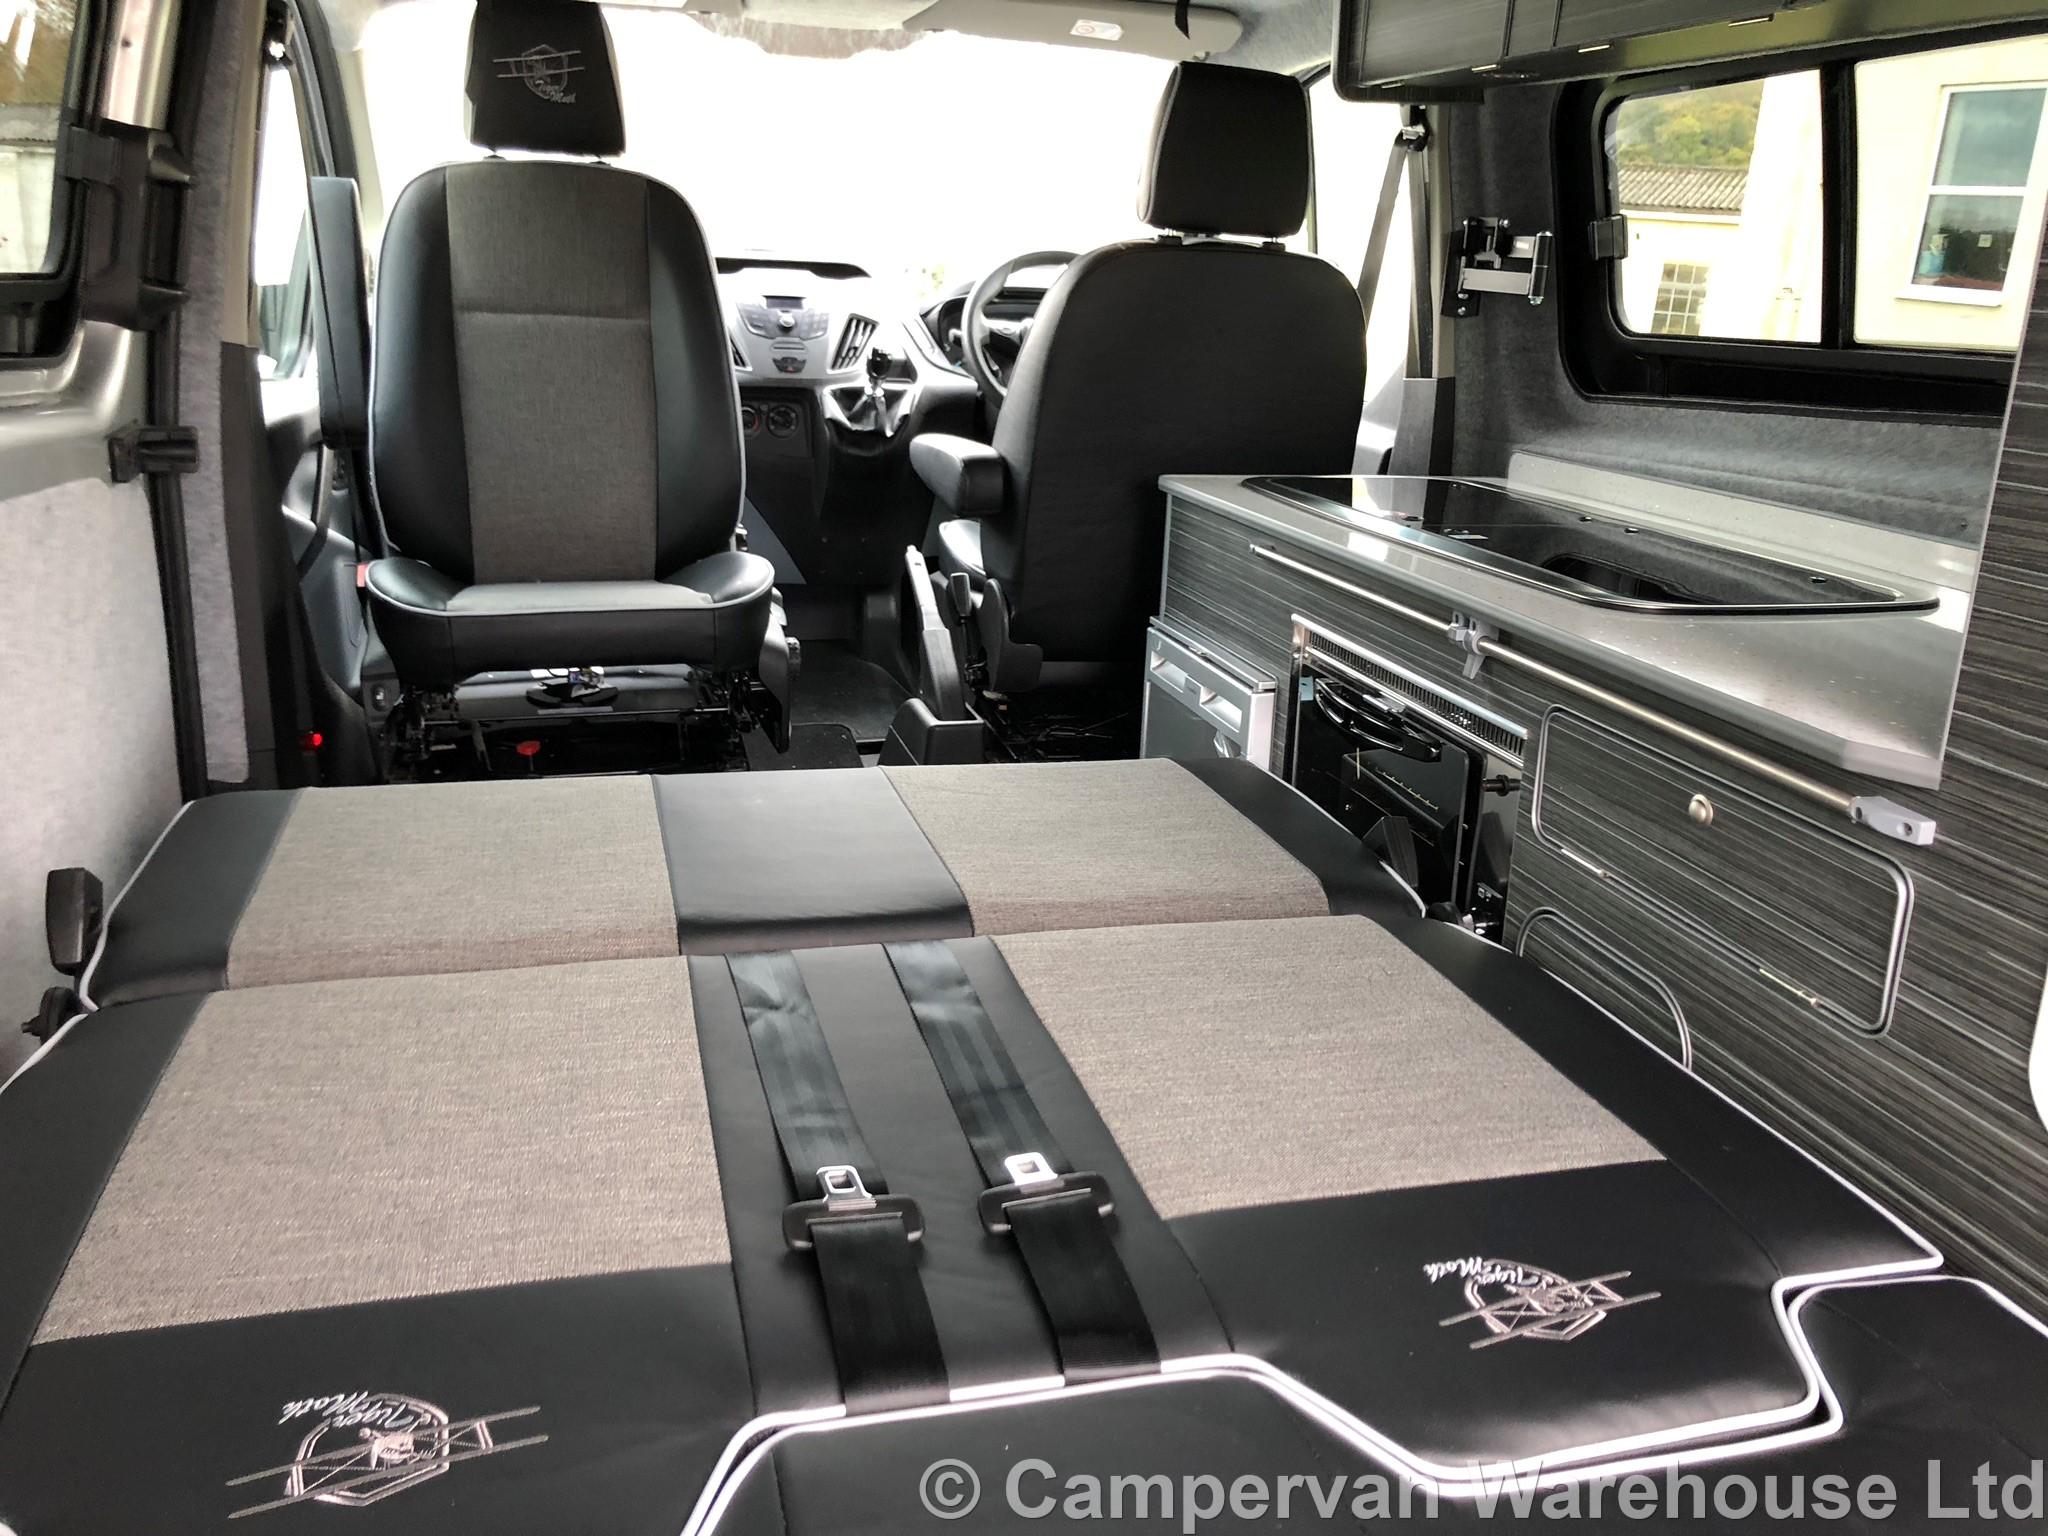 Conversions | Warminster | Campervan Warehouse Ltd